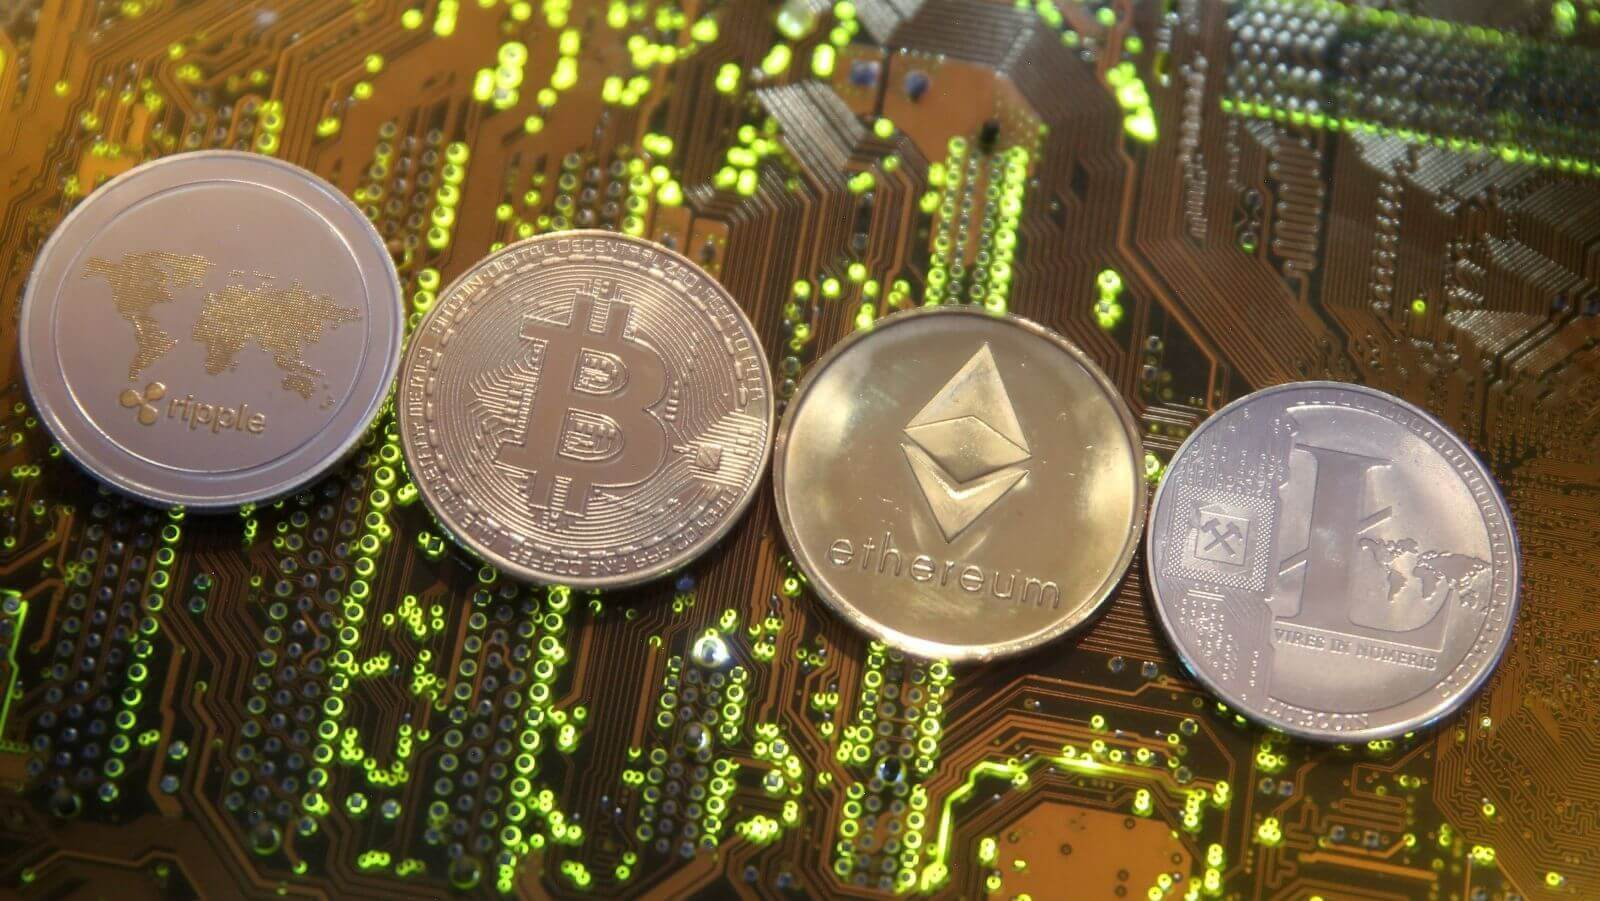 The IRS is sending out letters to crypto traders claiming they misreported their income